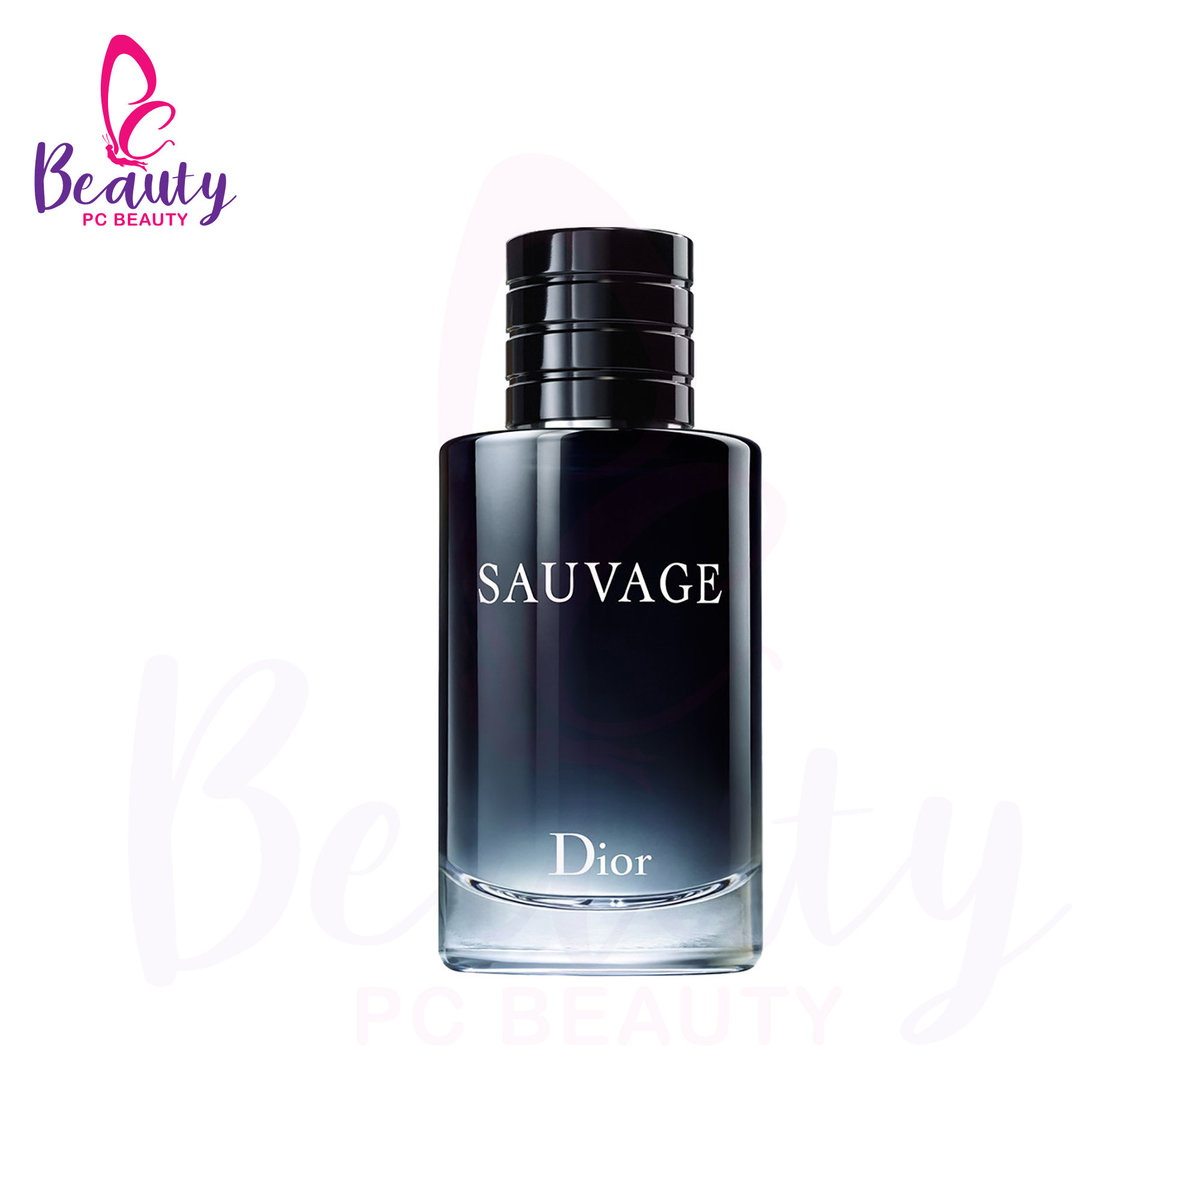 CD SAUVAGE EDT 100ML [Parallel Import Product]